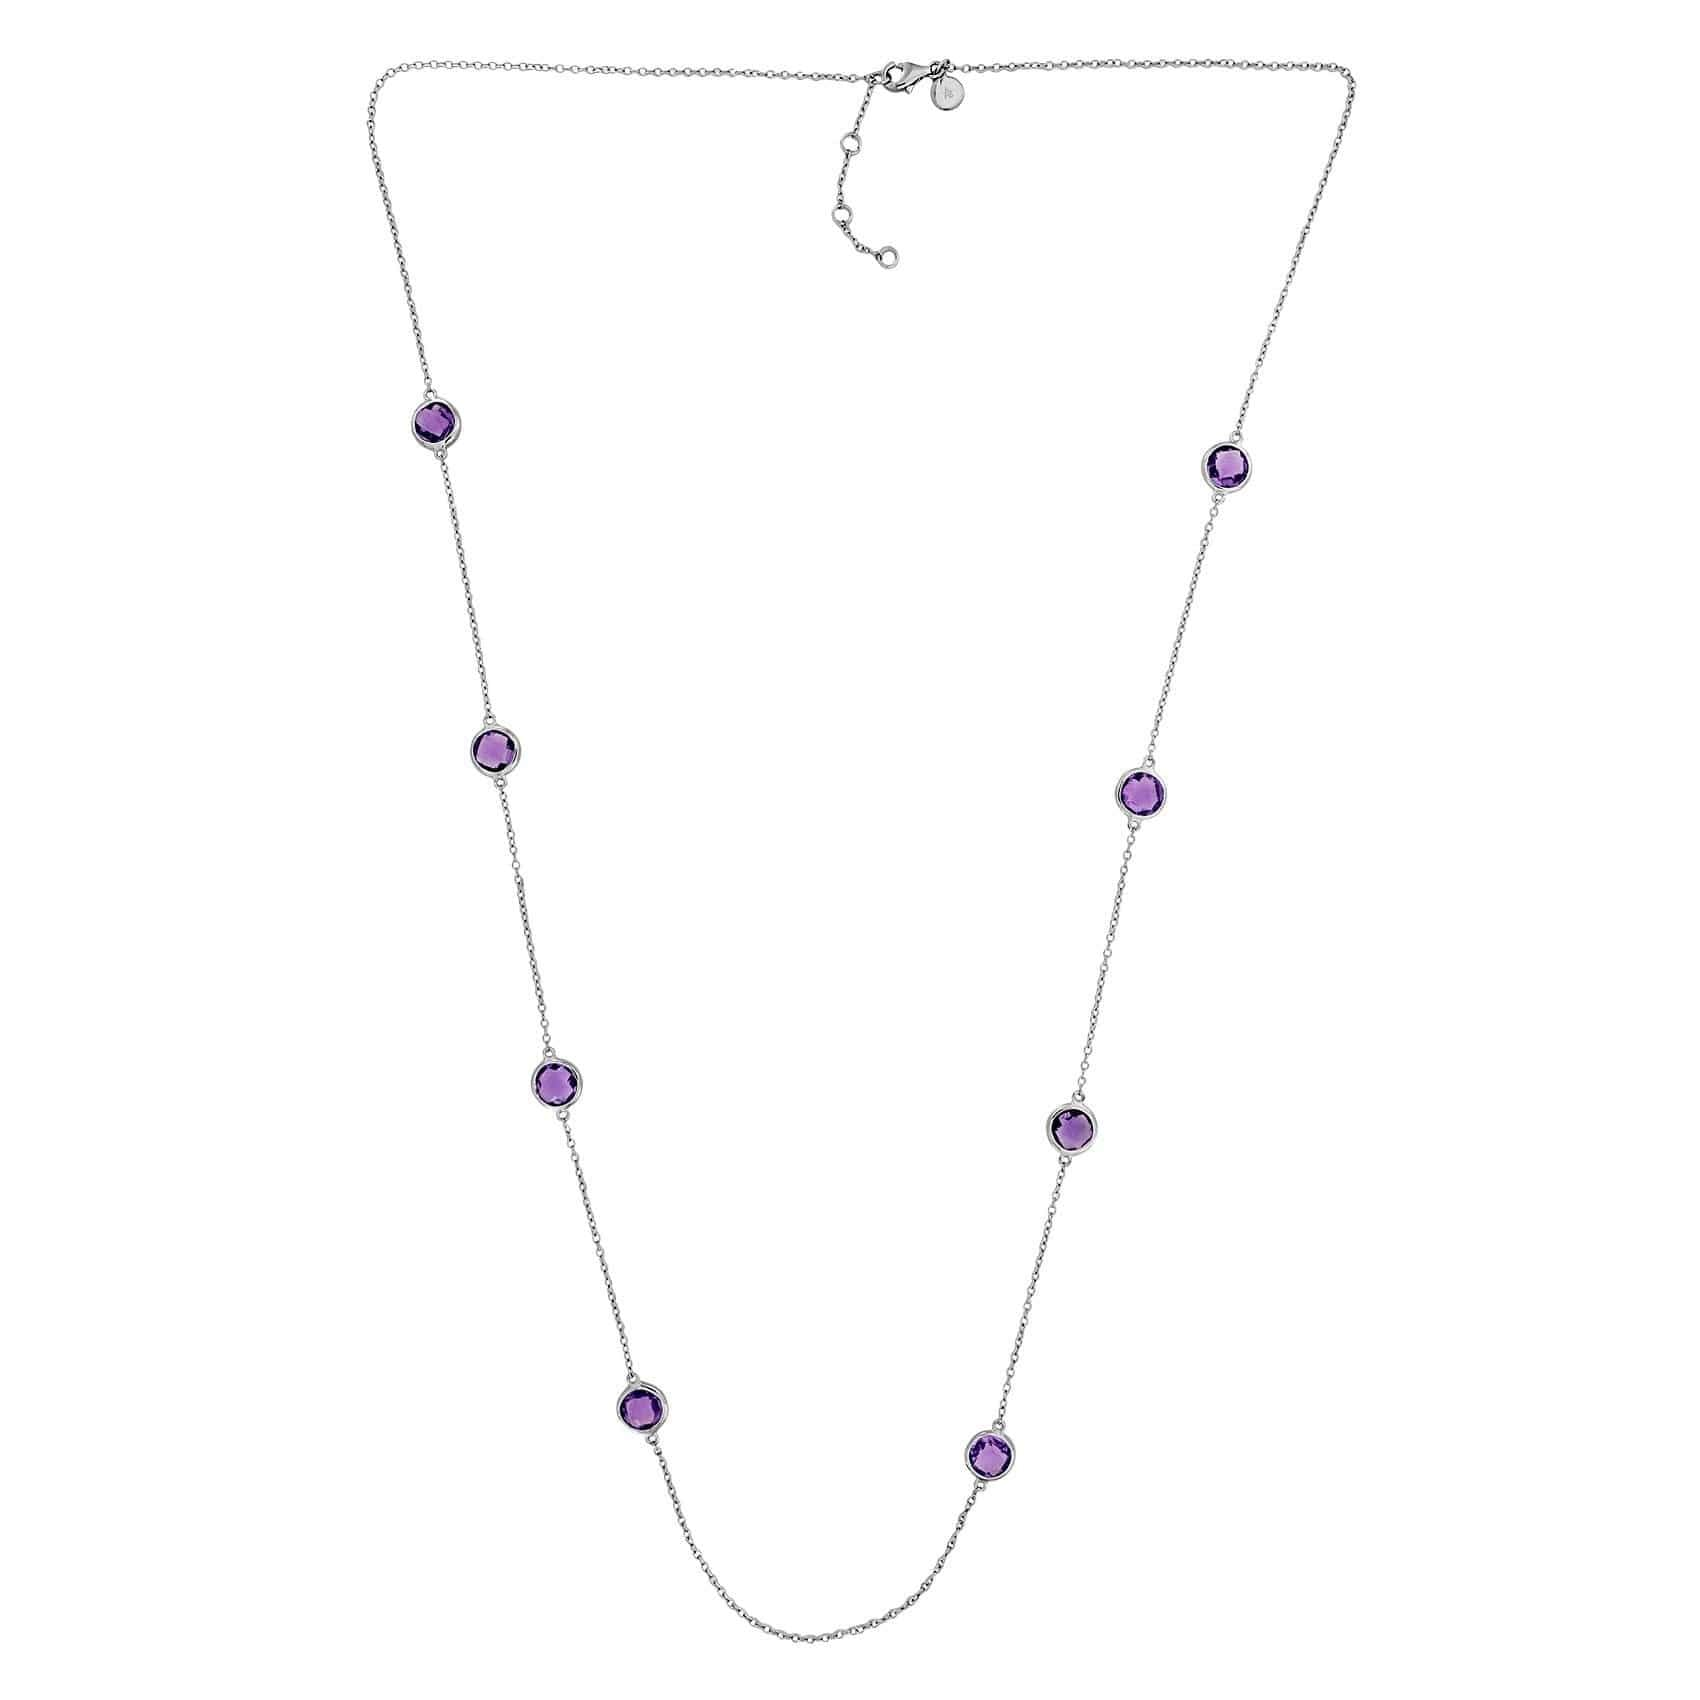 Silver & Amethyst Long Necklace